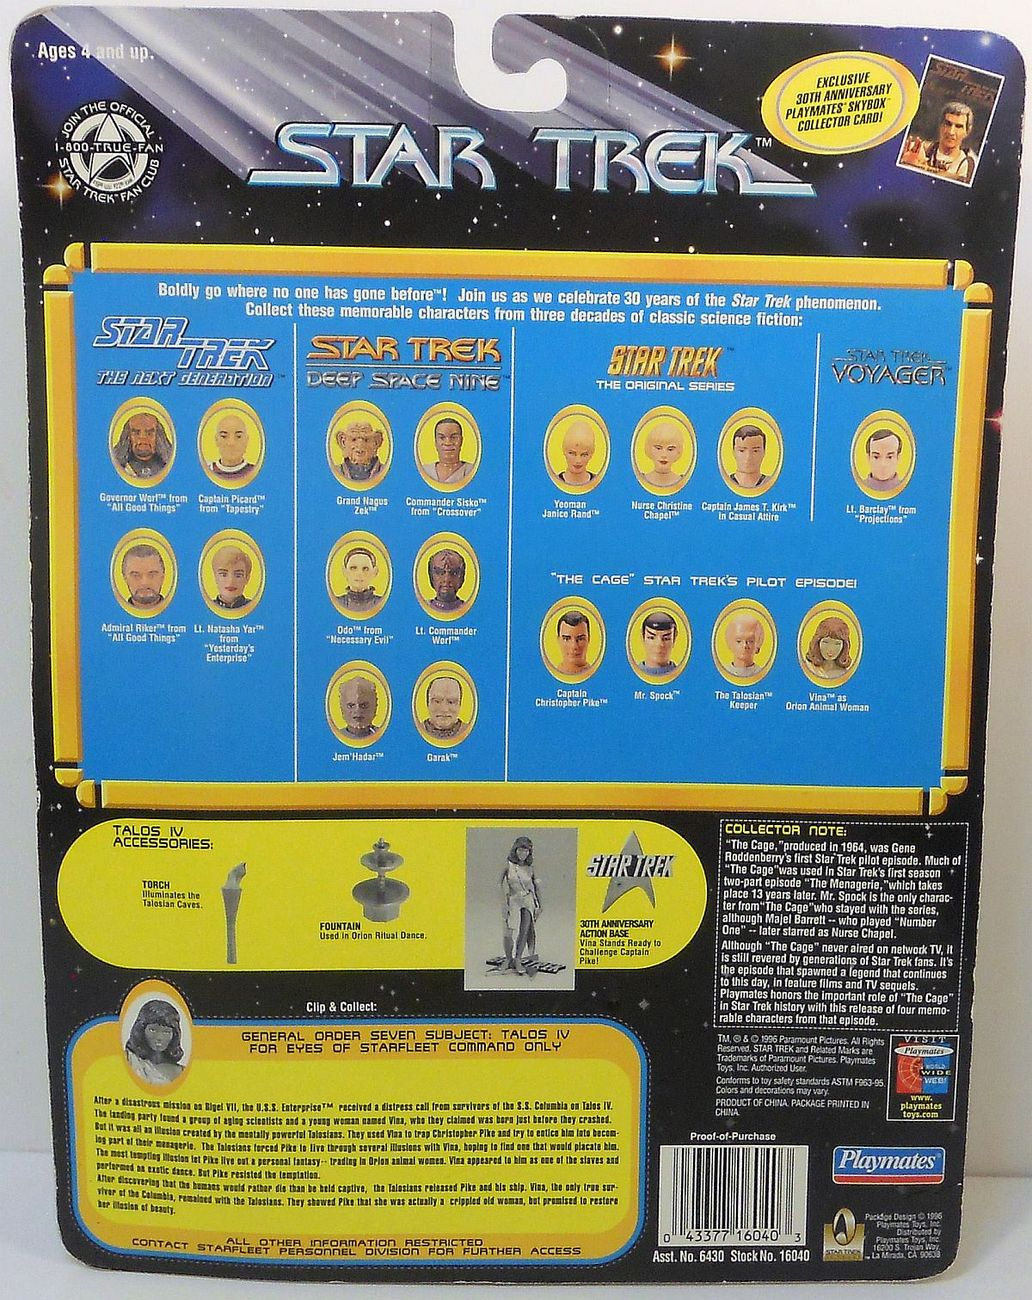 Image 2 of Star Trek TOS Vina as the Orion Girl The Cage Playmates 1996